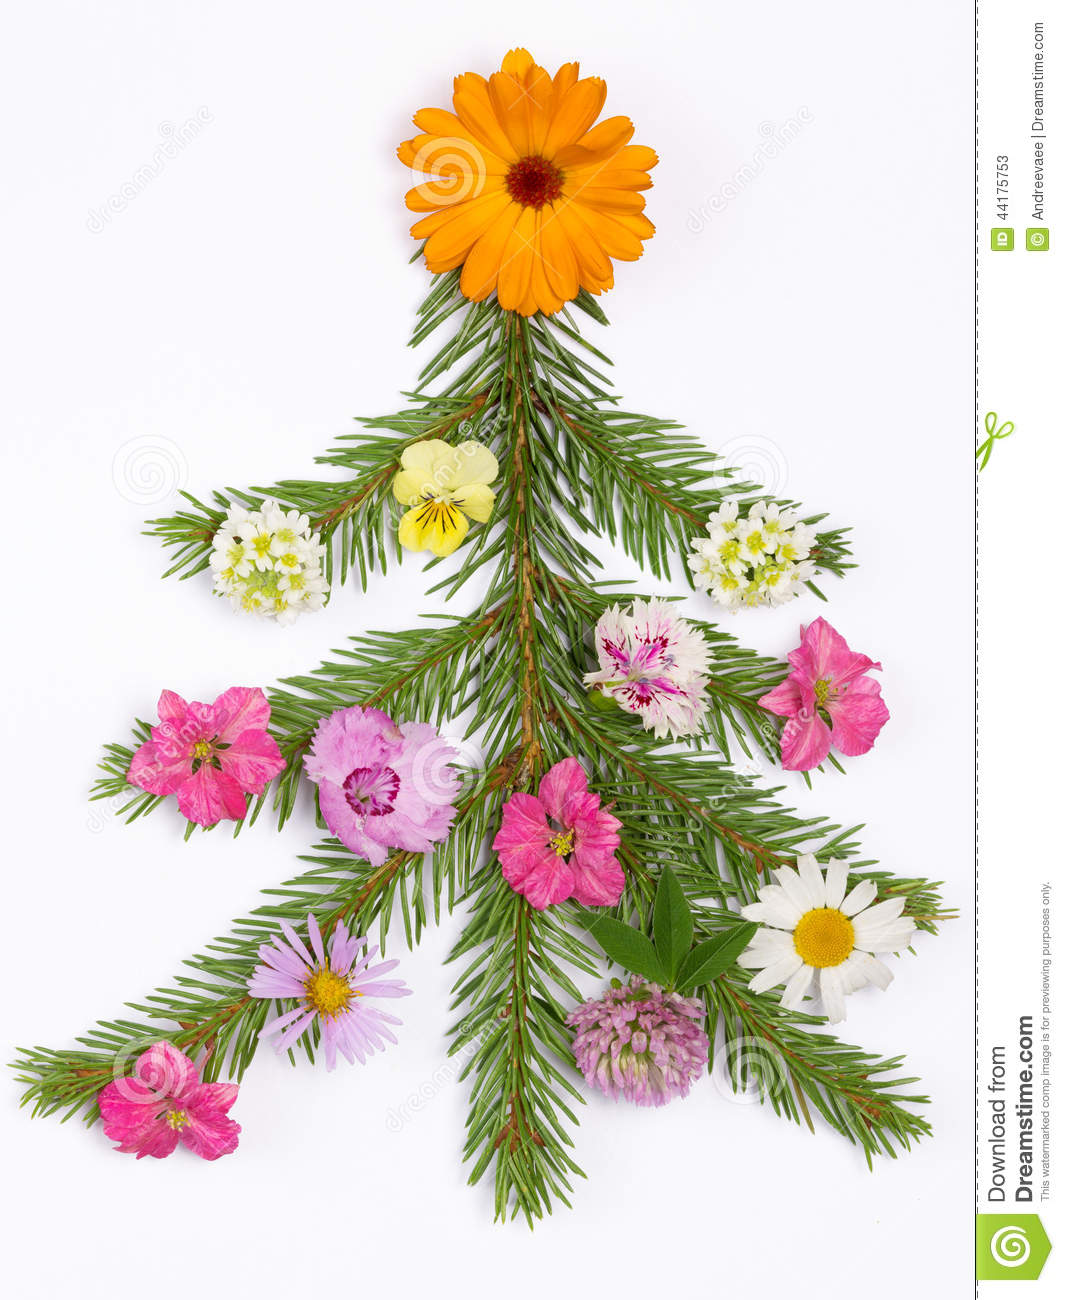 Christmas Tree Decorated With Flowers Stock Photo